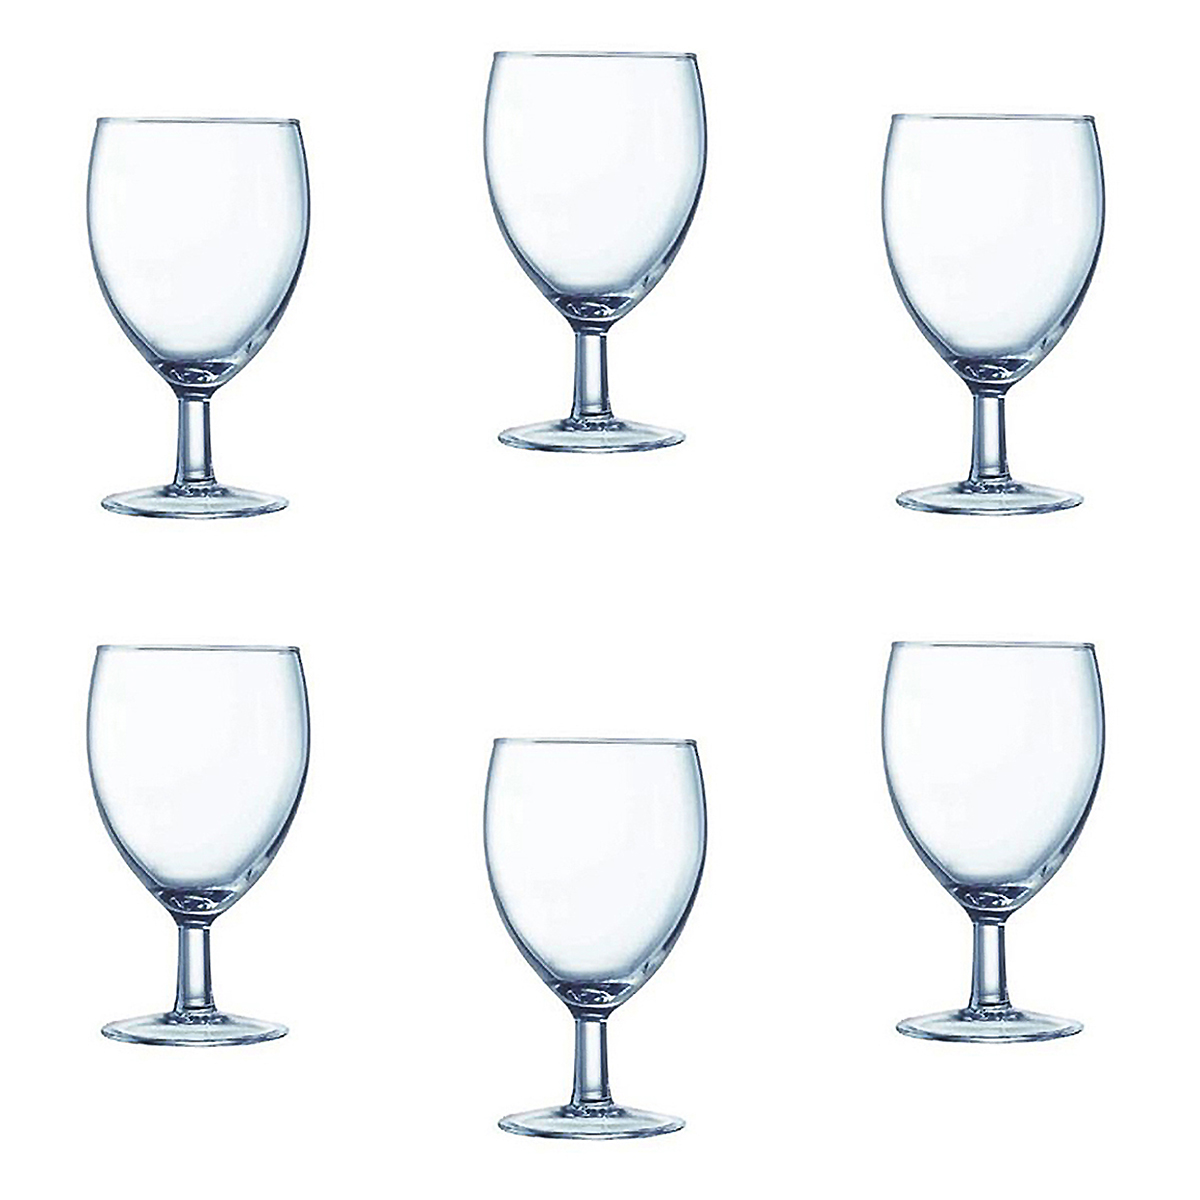 6 Cardinal Arcoroc Pro Balloon Glasses Set 11.5oz Goblet 07395 Water Wine Glass